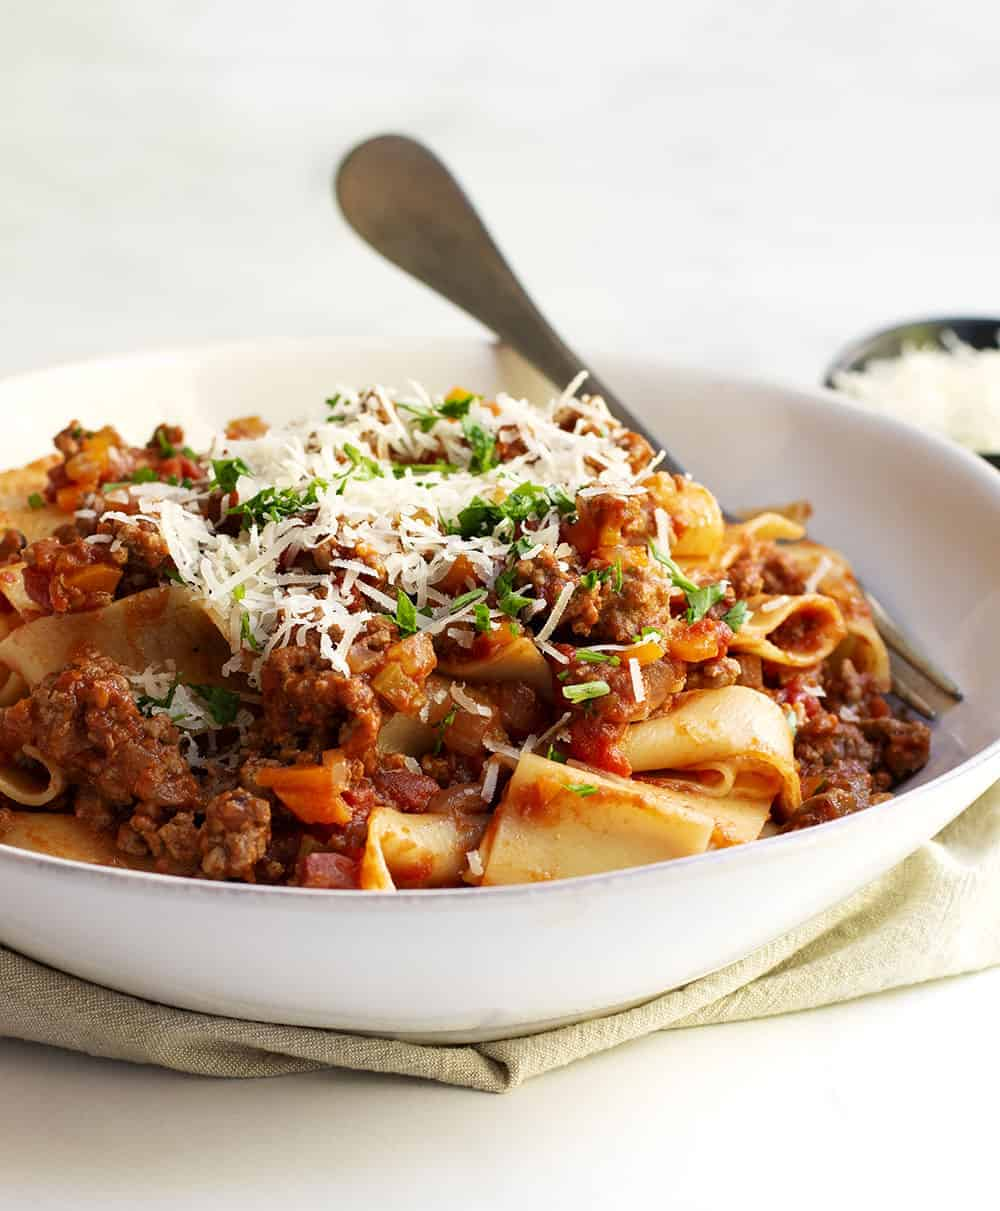 Bolognese Sauce with pappardelle served in a shallow white bowl